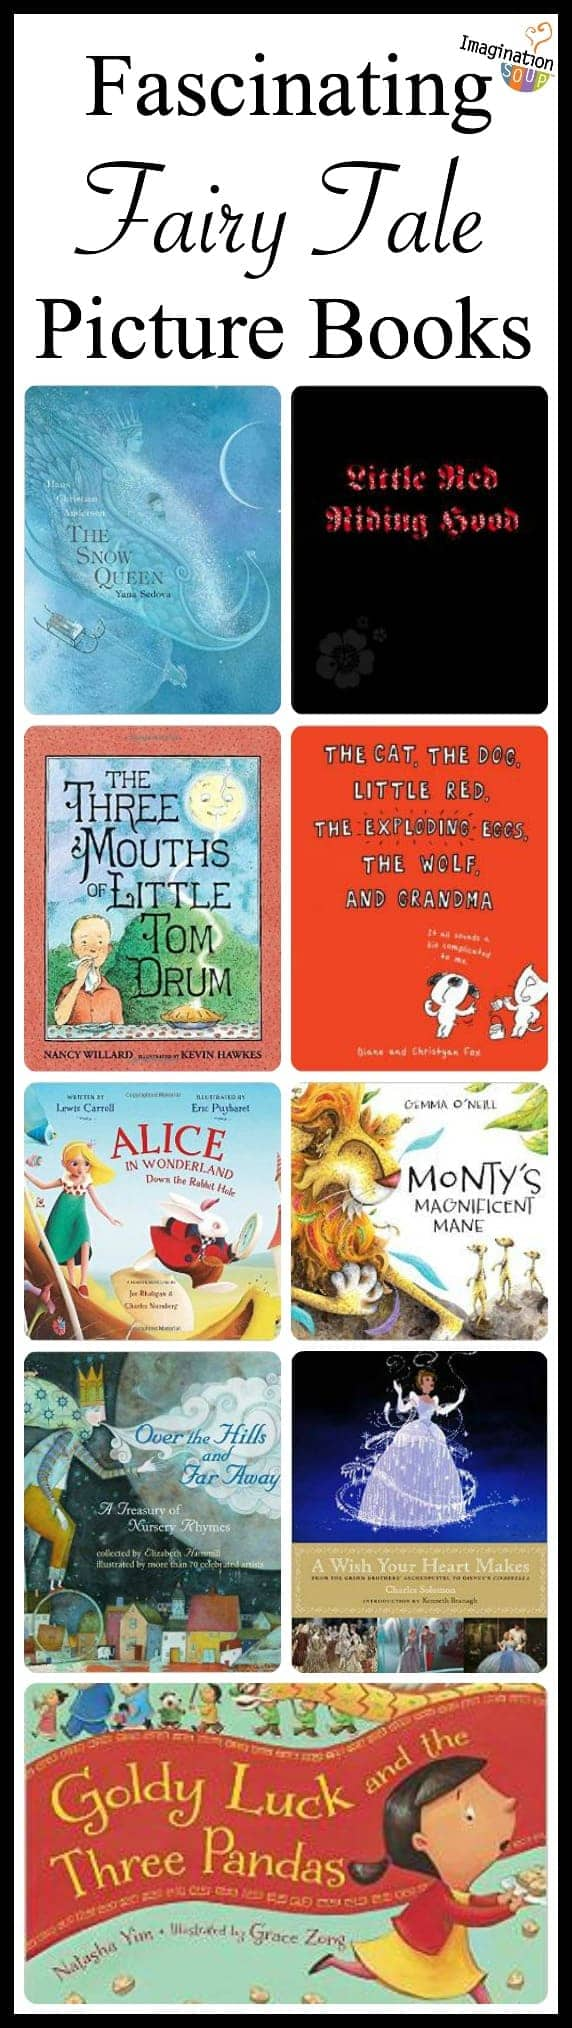 fascinating fairy tale picture books